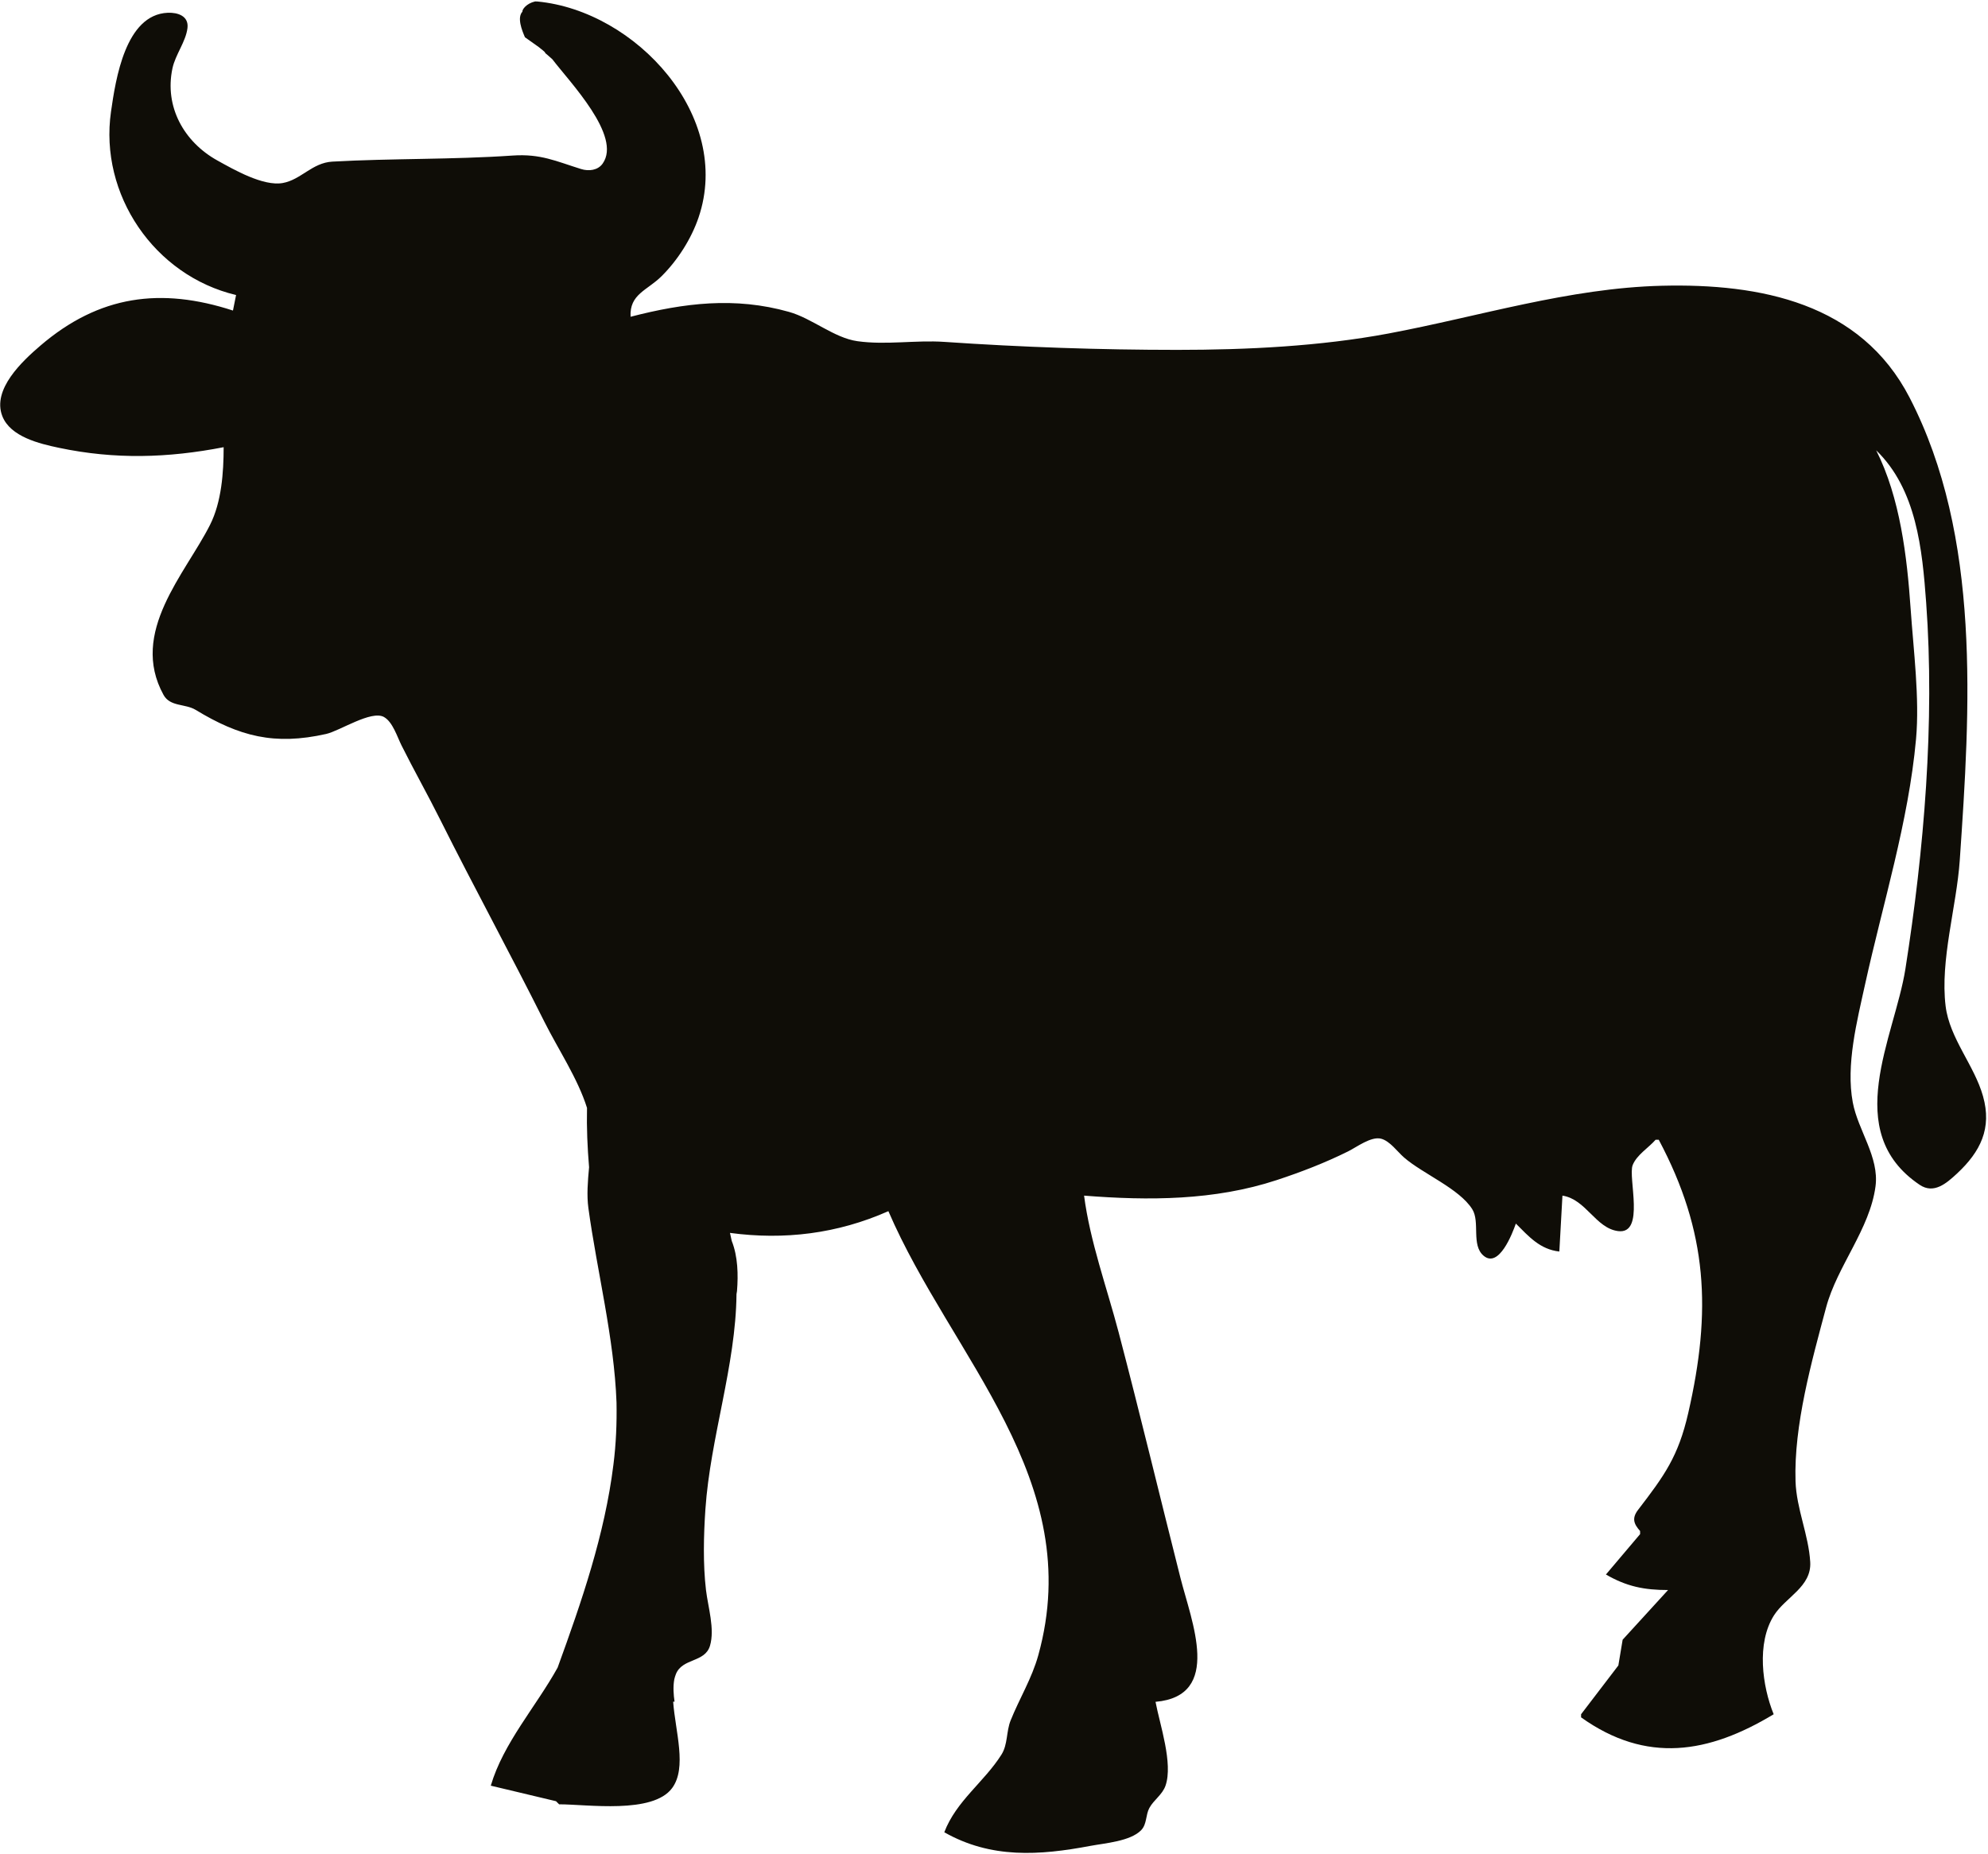 Animal silhouette clipart cow image library download Cattle Clip art Vector graphics Cow Silhouette - qurba png qurban ... image library download